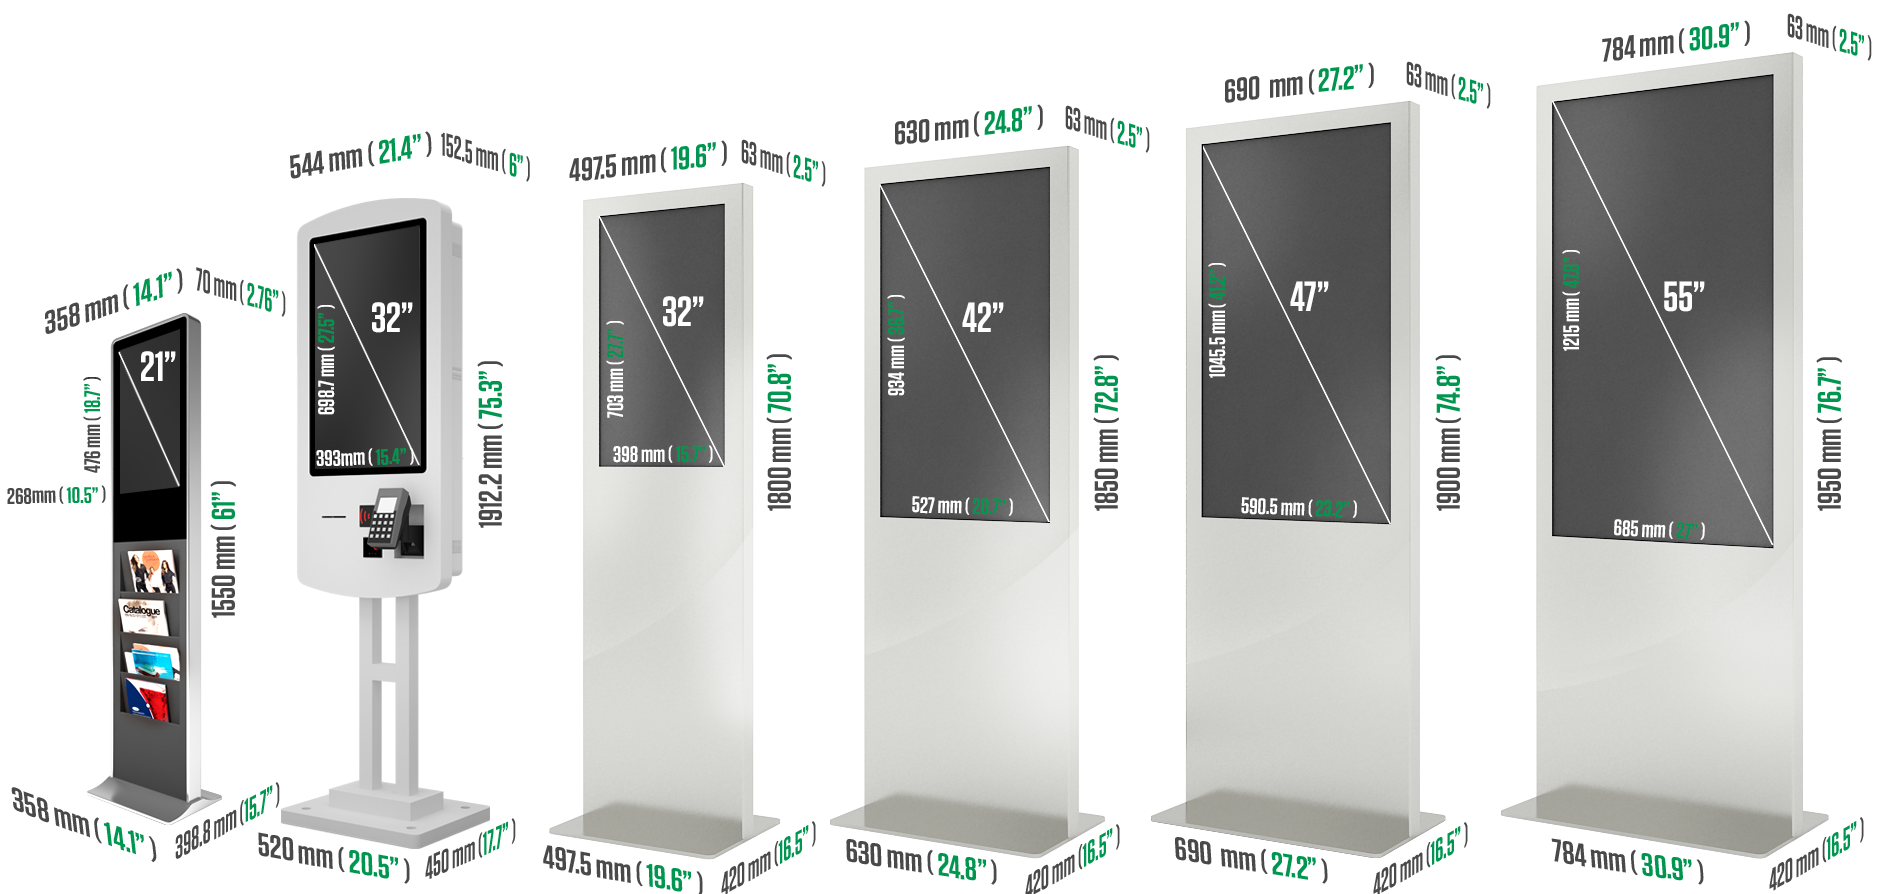 Eflyn Catalogue Kiosk, Self Ordering Kiosk, and Various Free Standing Multi-Touch Kiosks Measurements